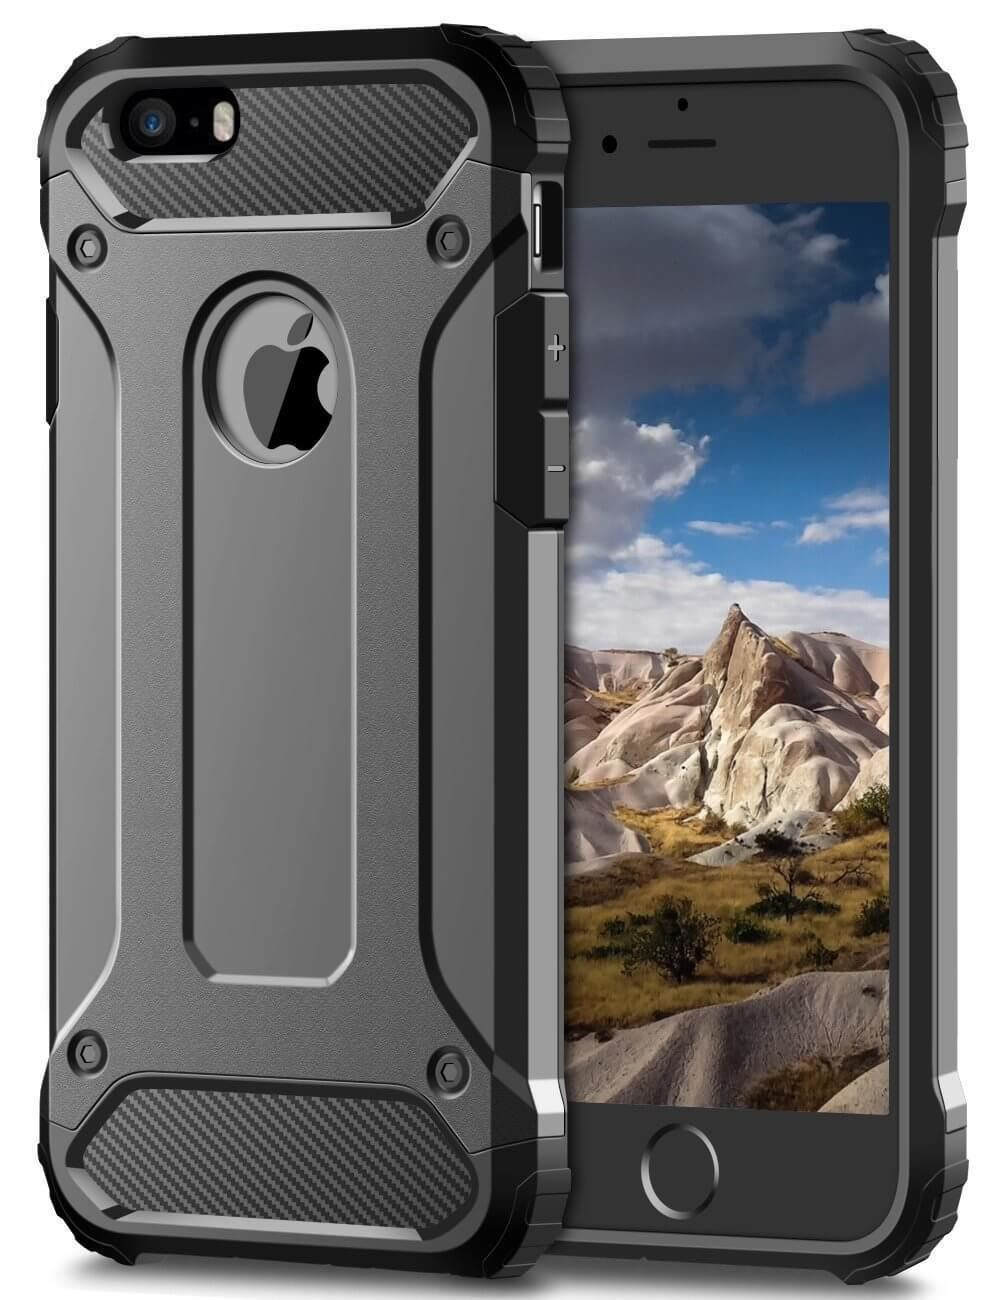 Hybrid-Armor-Shockproof-Rugged-Bumper-Case-For-Apple-iPhone-10-X-8-7-Plus-6s-5s miniature 21